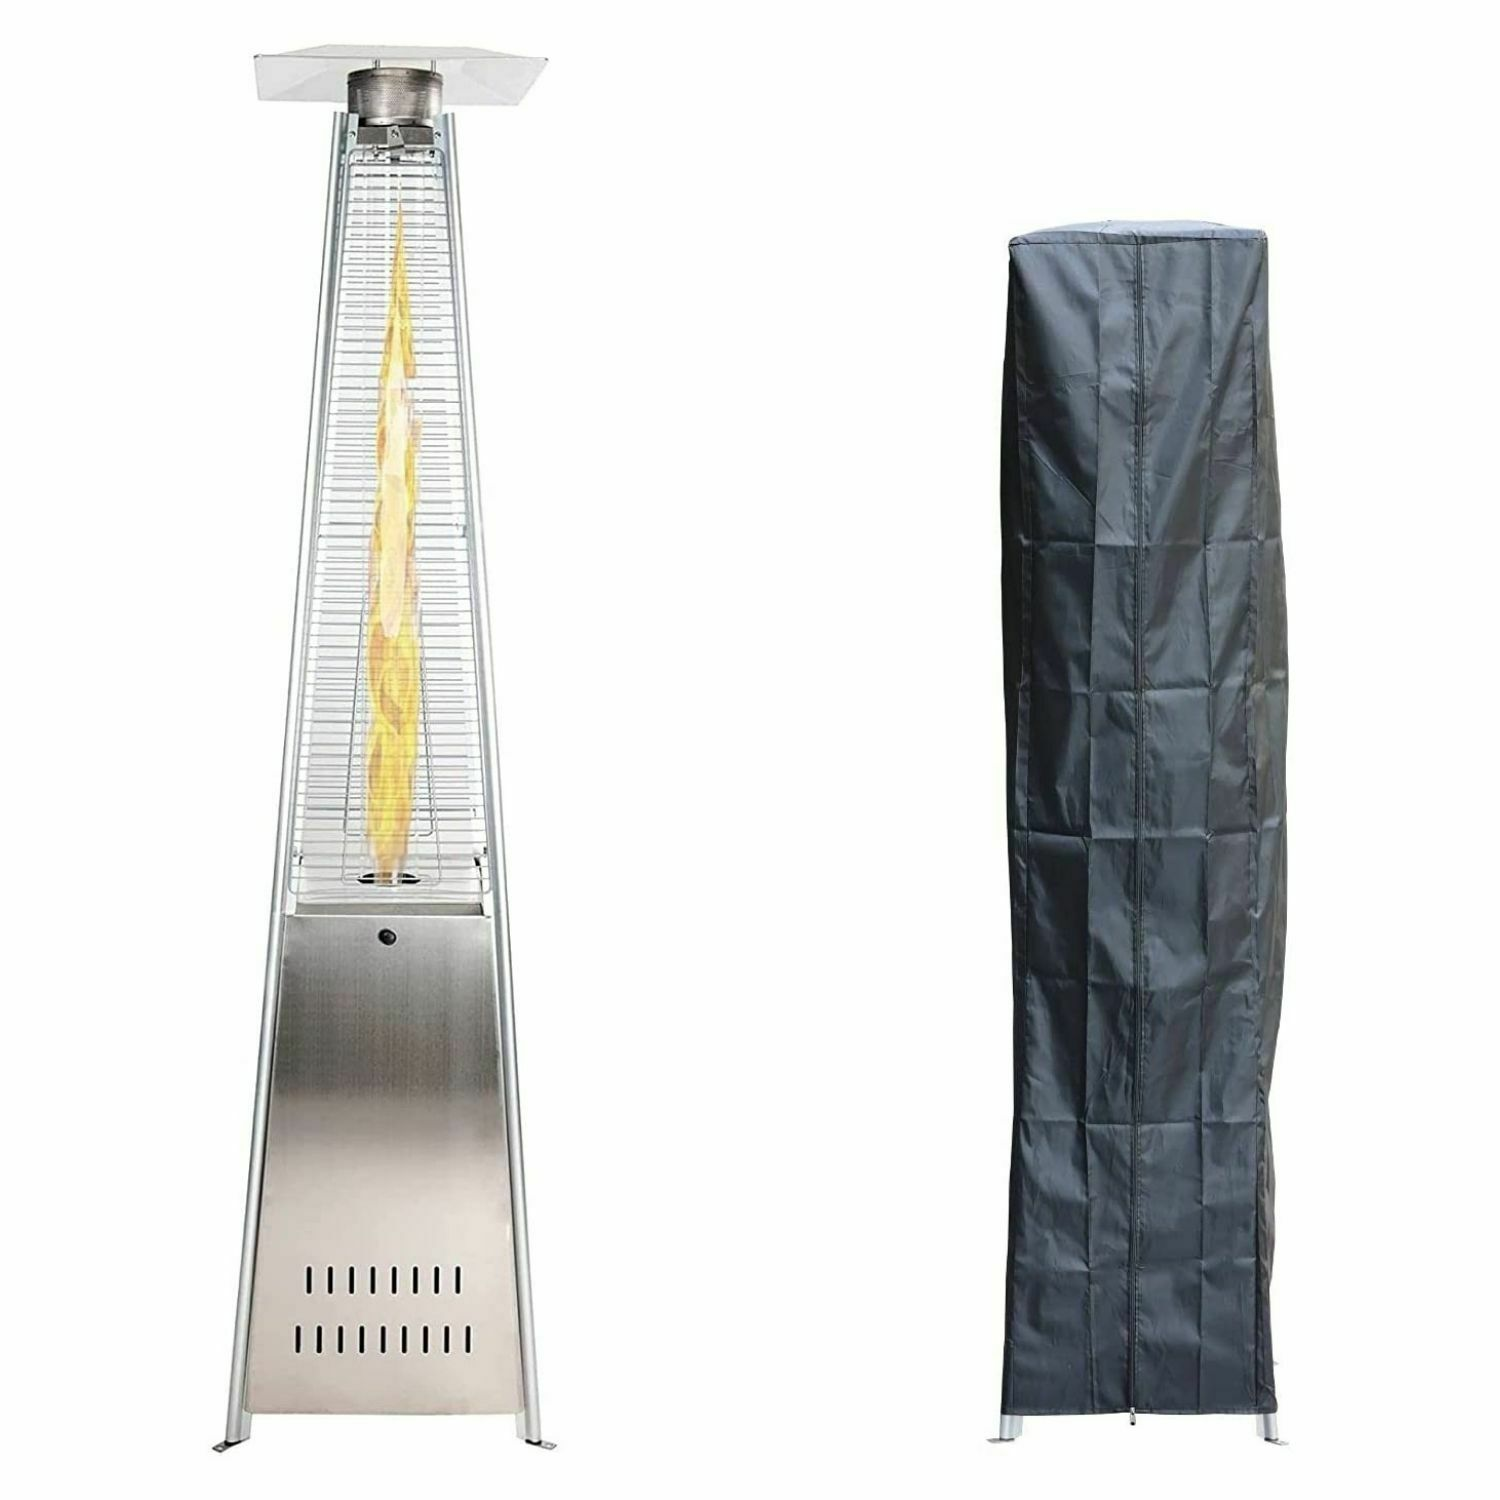 Outdoor Flame Patio Heater - Freestanding Pyramid Heater with Cover